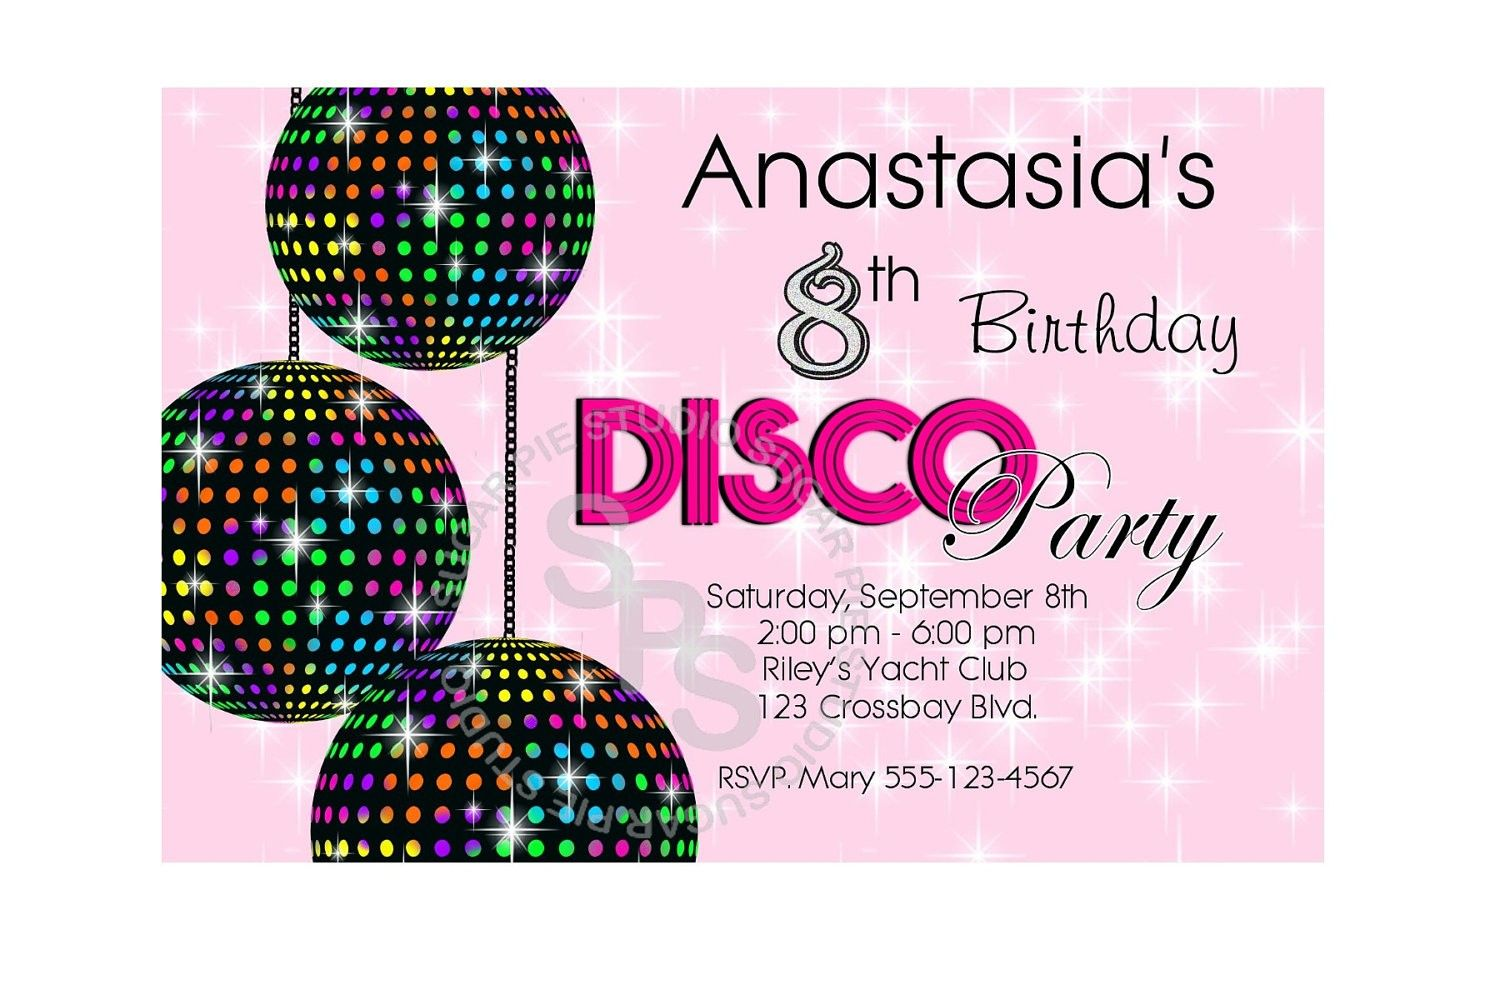 Free Disco Free Party Invites For Children Lugares Para Visitar - Disco party invites templates free